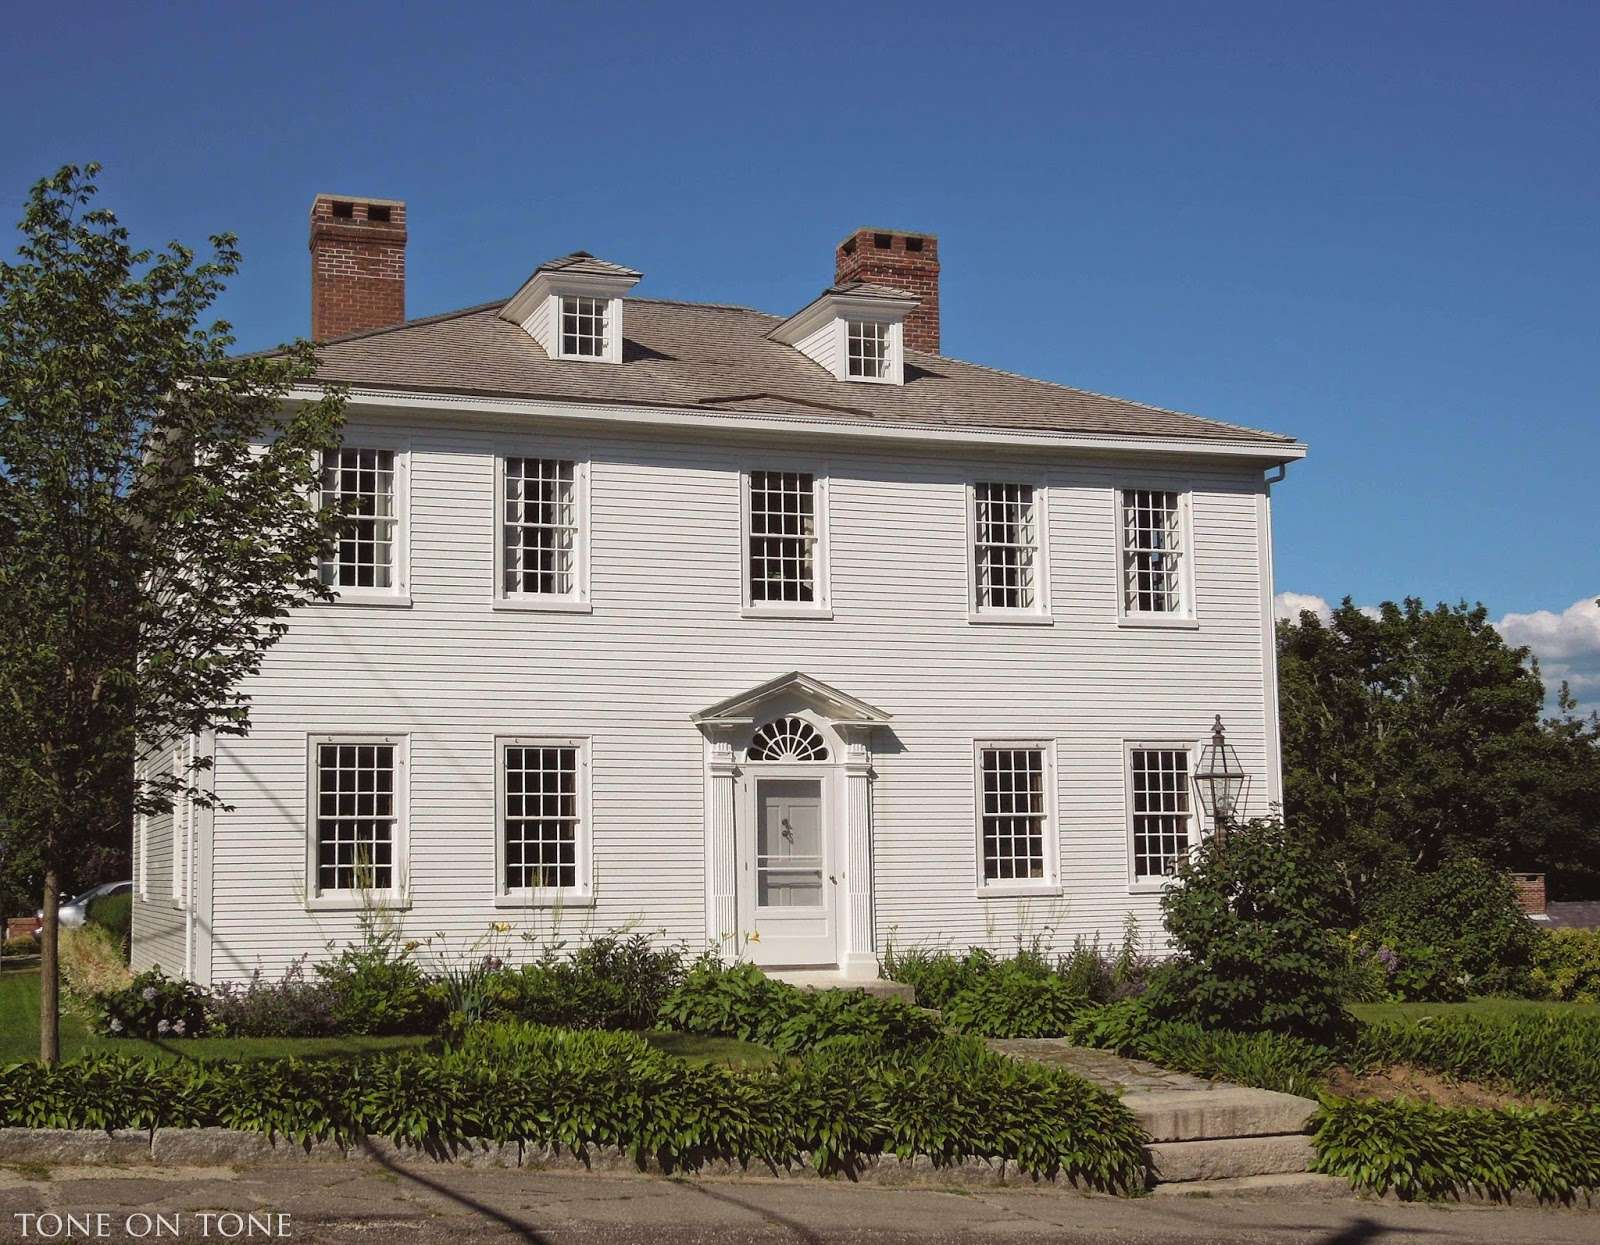 Federal Greek Revival Style Homes Still Grace Its Streets